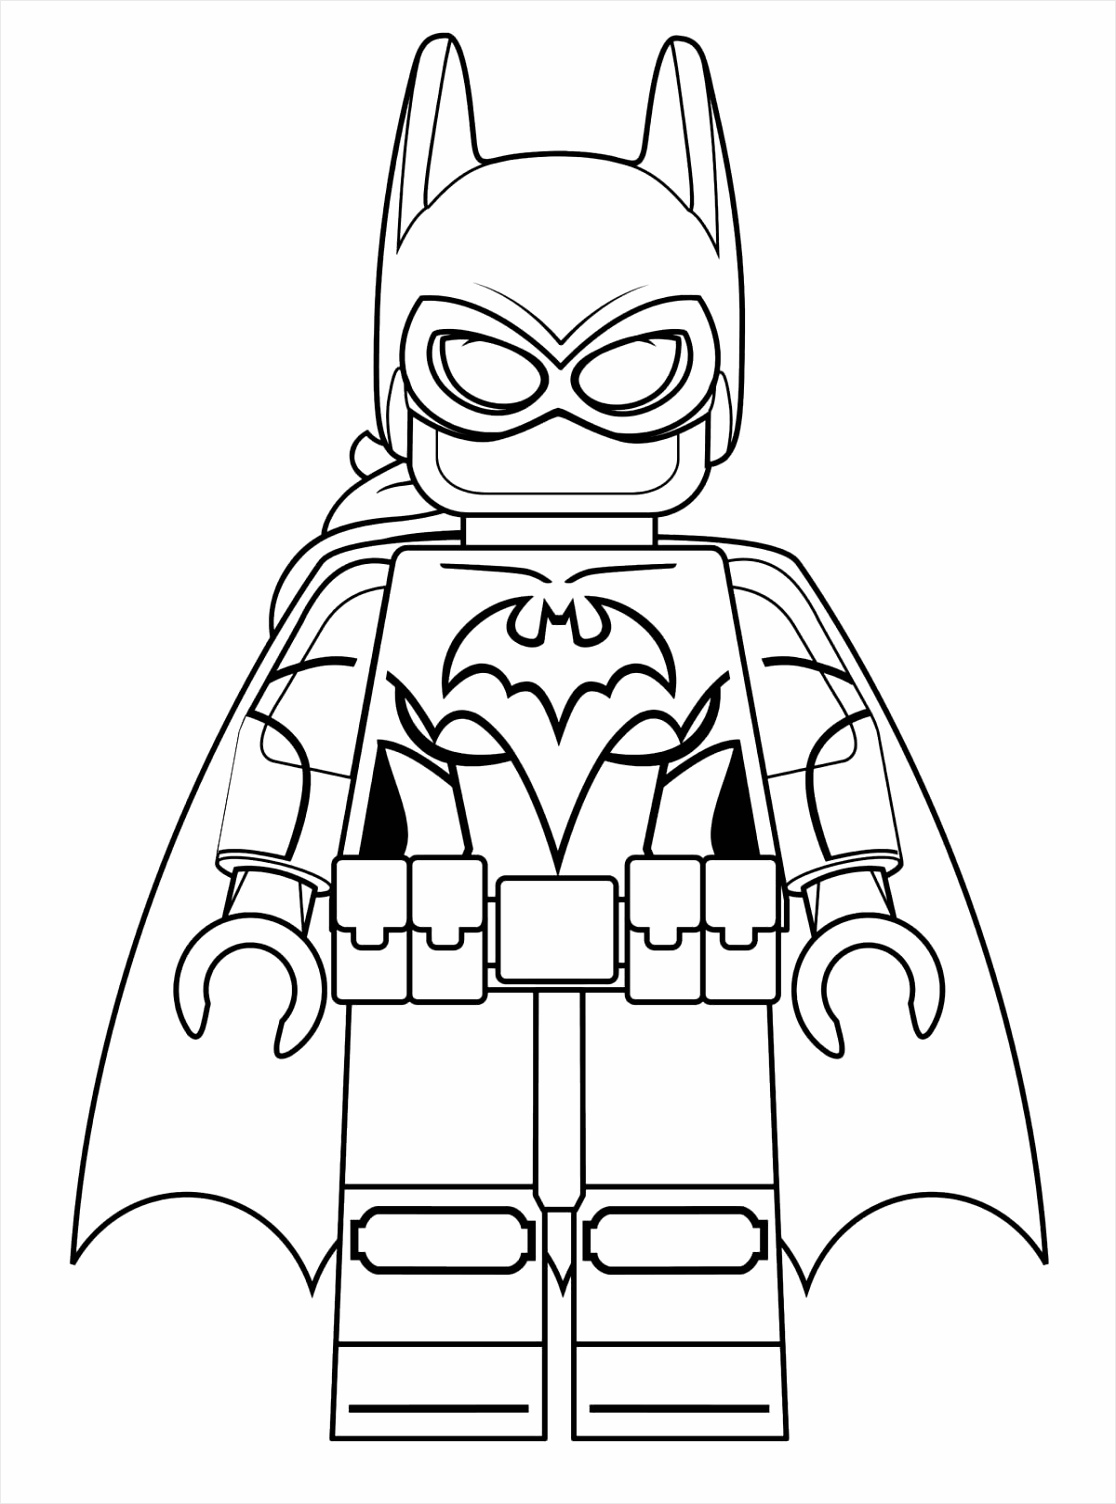 Lego Superman And Batman Coloring Pages lego batman coloring pages best coloring pages for kids Superman And Pages Batman Lego Coloring reeai